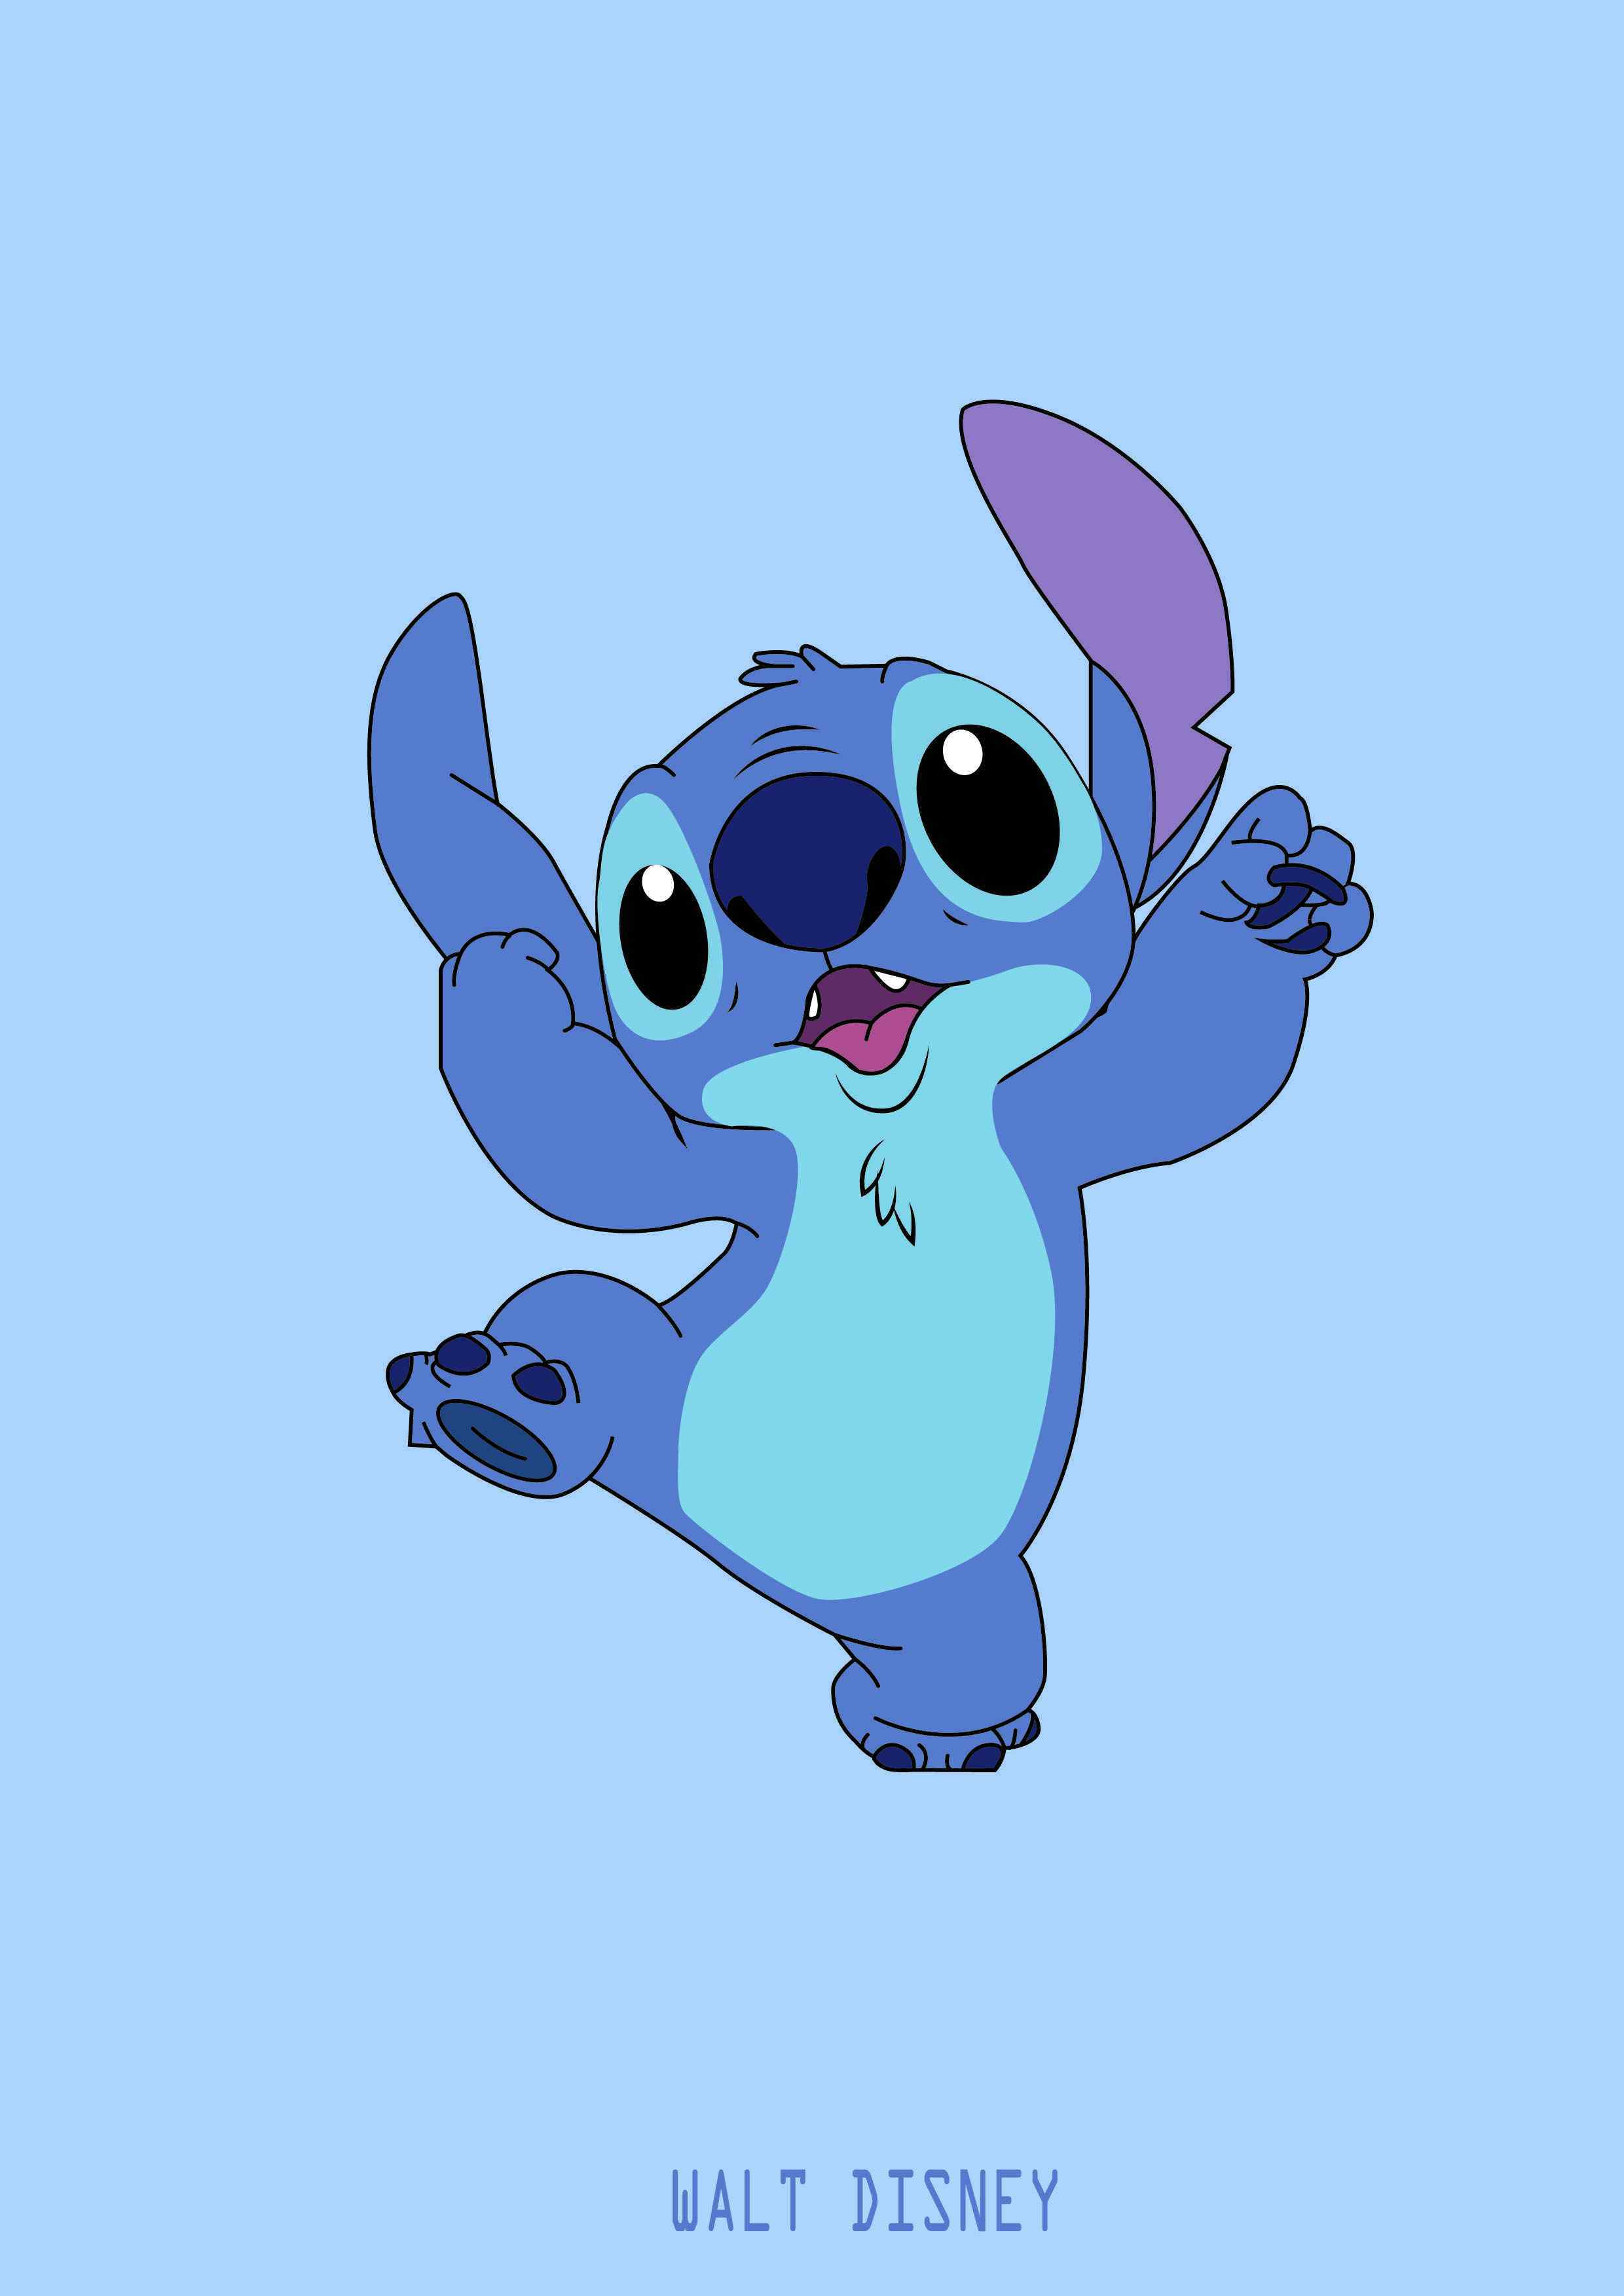 Fondos de pantalla iPhone Disney Stitch Wallpapers Fundas para móviles - 스티치, Hd